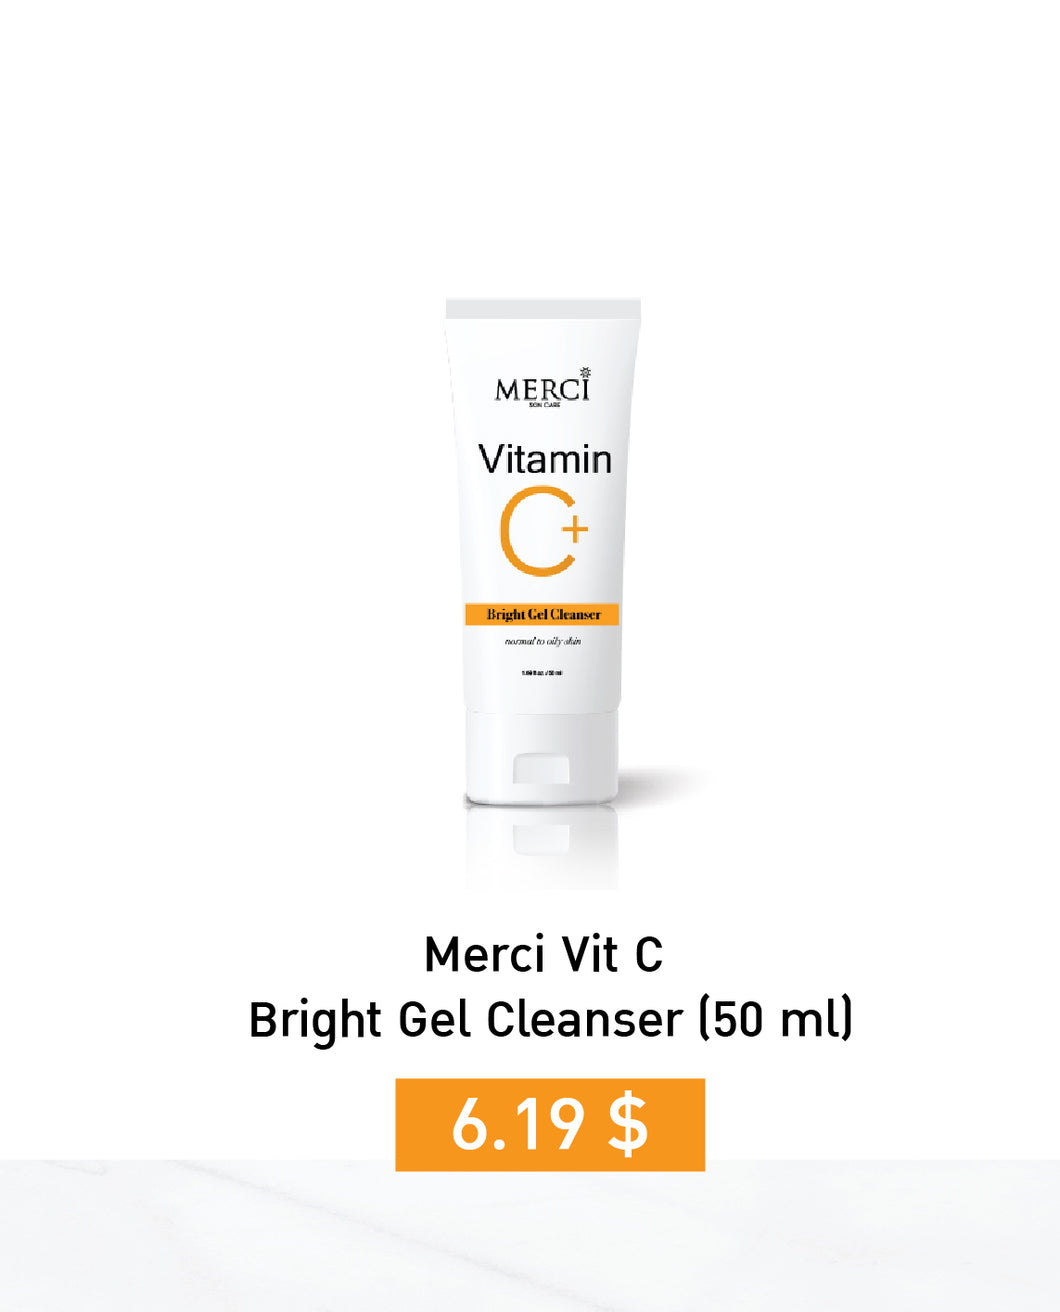 MERCI VITAMIN C Bright Gel Cleanser